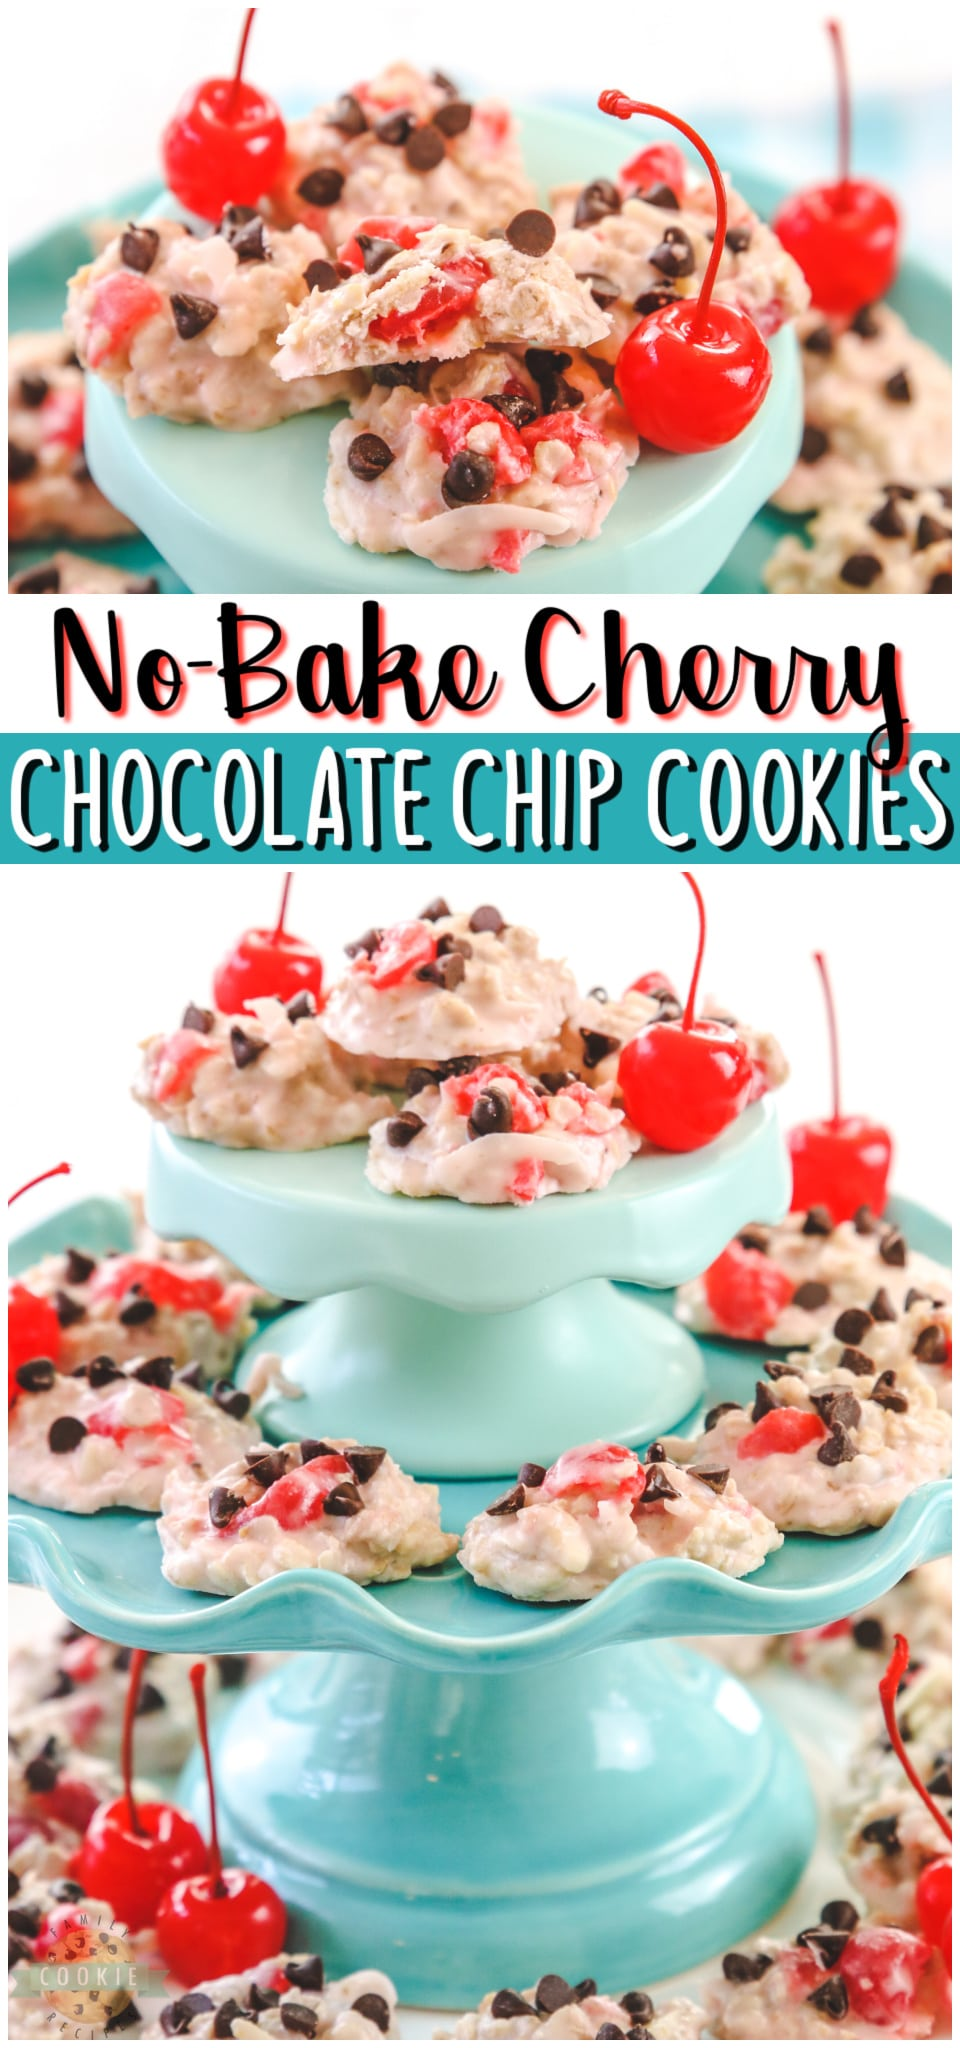 Cherry Chocolate Chip No Bake Cookies are fruity, festive & so simple to make! Incredibly cherry almond vanilla flavor in these easy no-bake cookie recipe. #nobake #cookies #vanilla #cherry #almond #Valentines #dessert #easyrecipe from FAMILY COOKIE RECIPES via @familycookierecipes